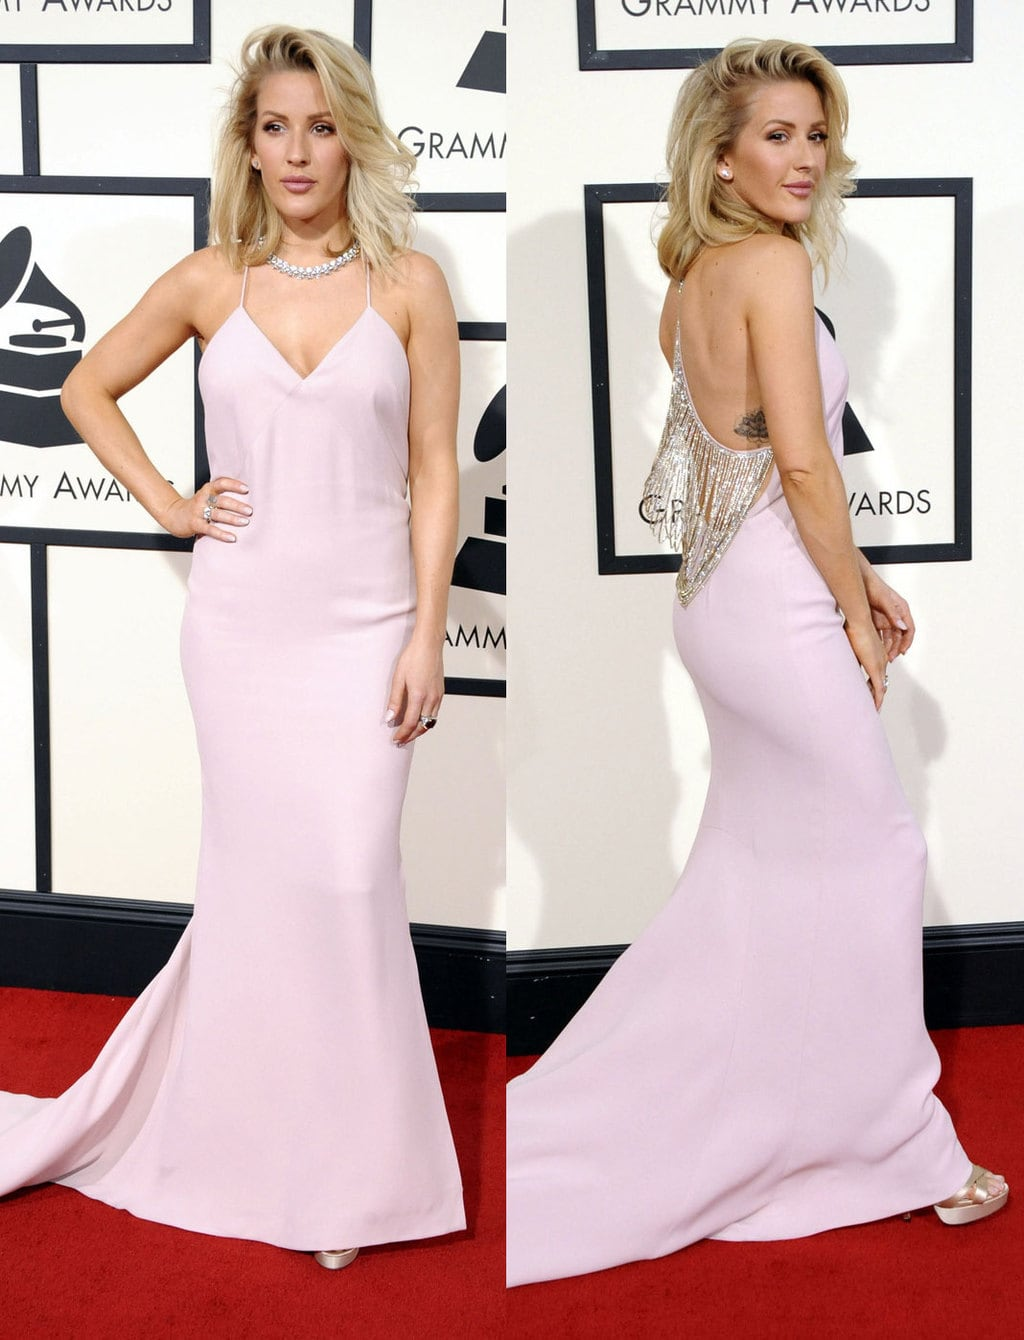 Ellie Goulding in Stella McCartney at the 2016 Grammy Awards